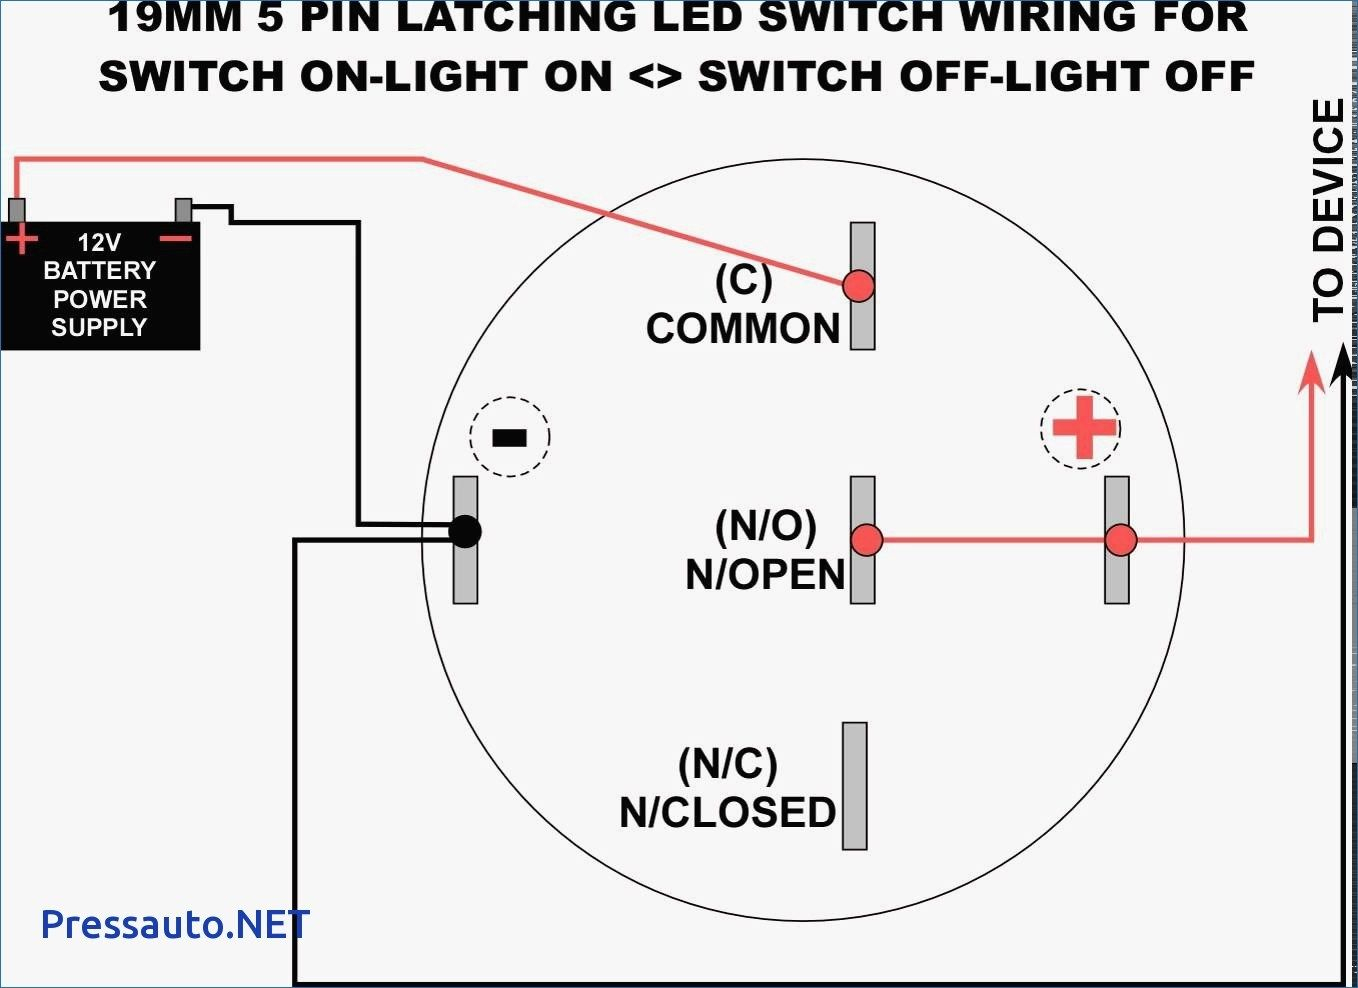 Best Relay Wiring Diagram 5 Pin Bosch 3 Prong Headlight For Switch - 3 Prong Plug Wiring Diagram